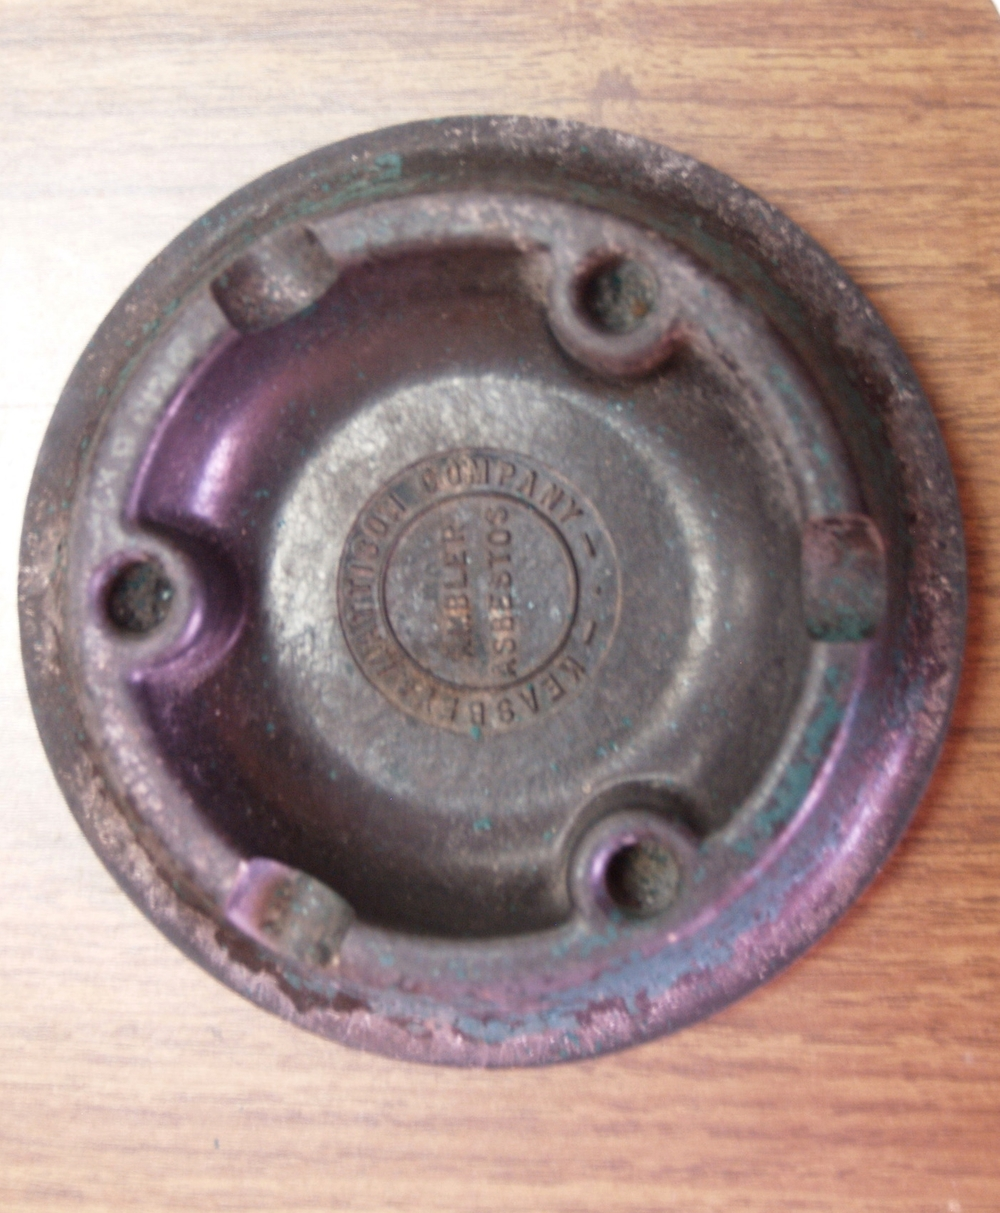 Keasbey and Mattison ashtray, date unknown.   Wissahickon Valley Historical Society.